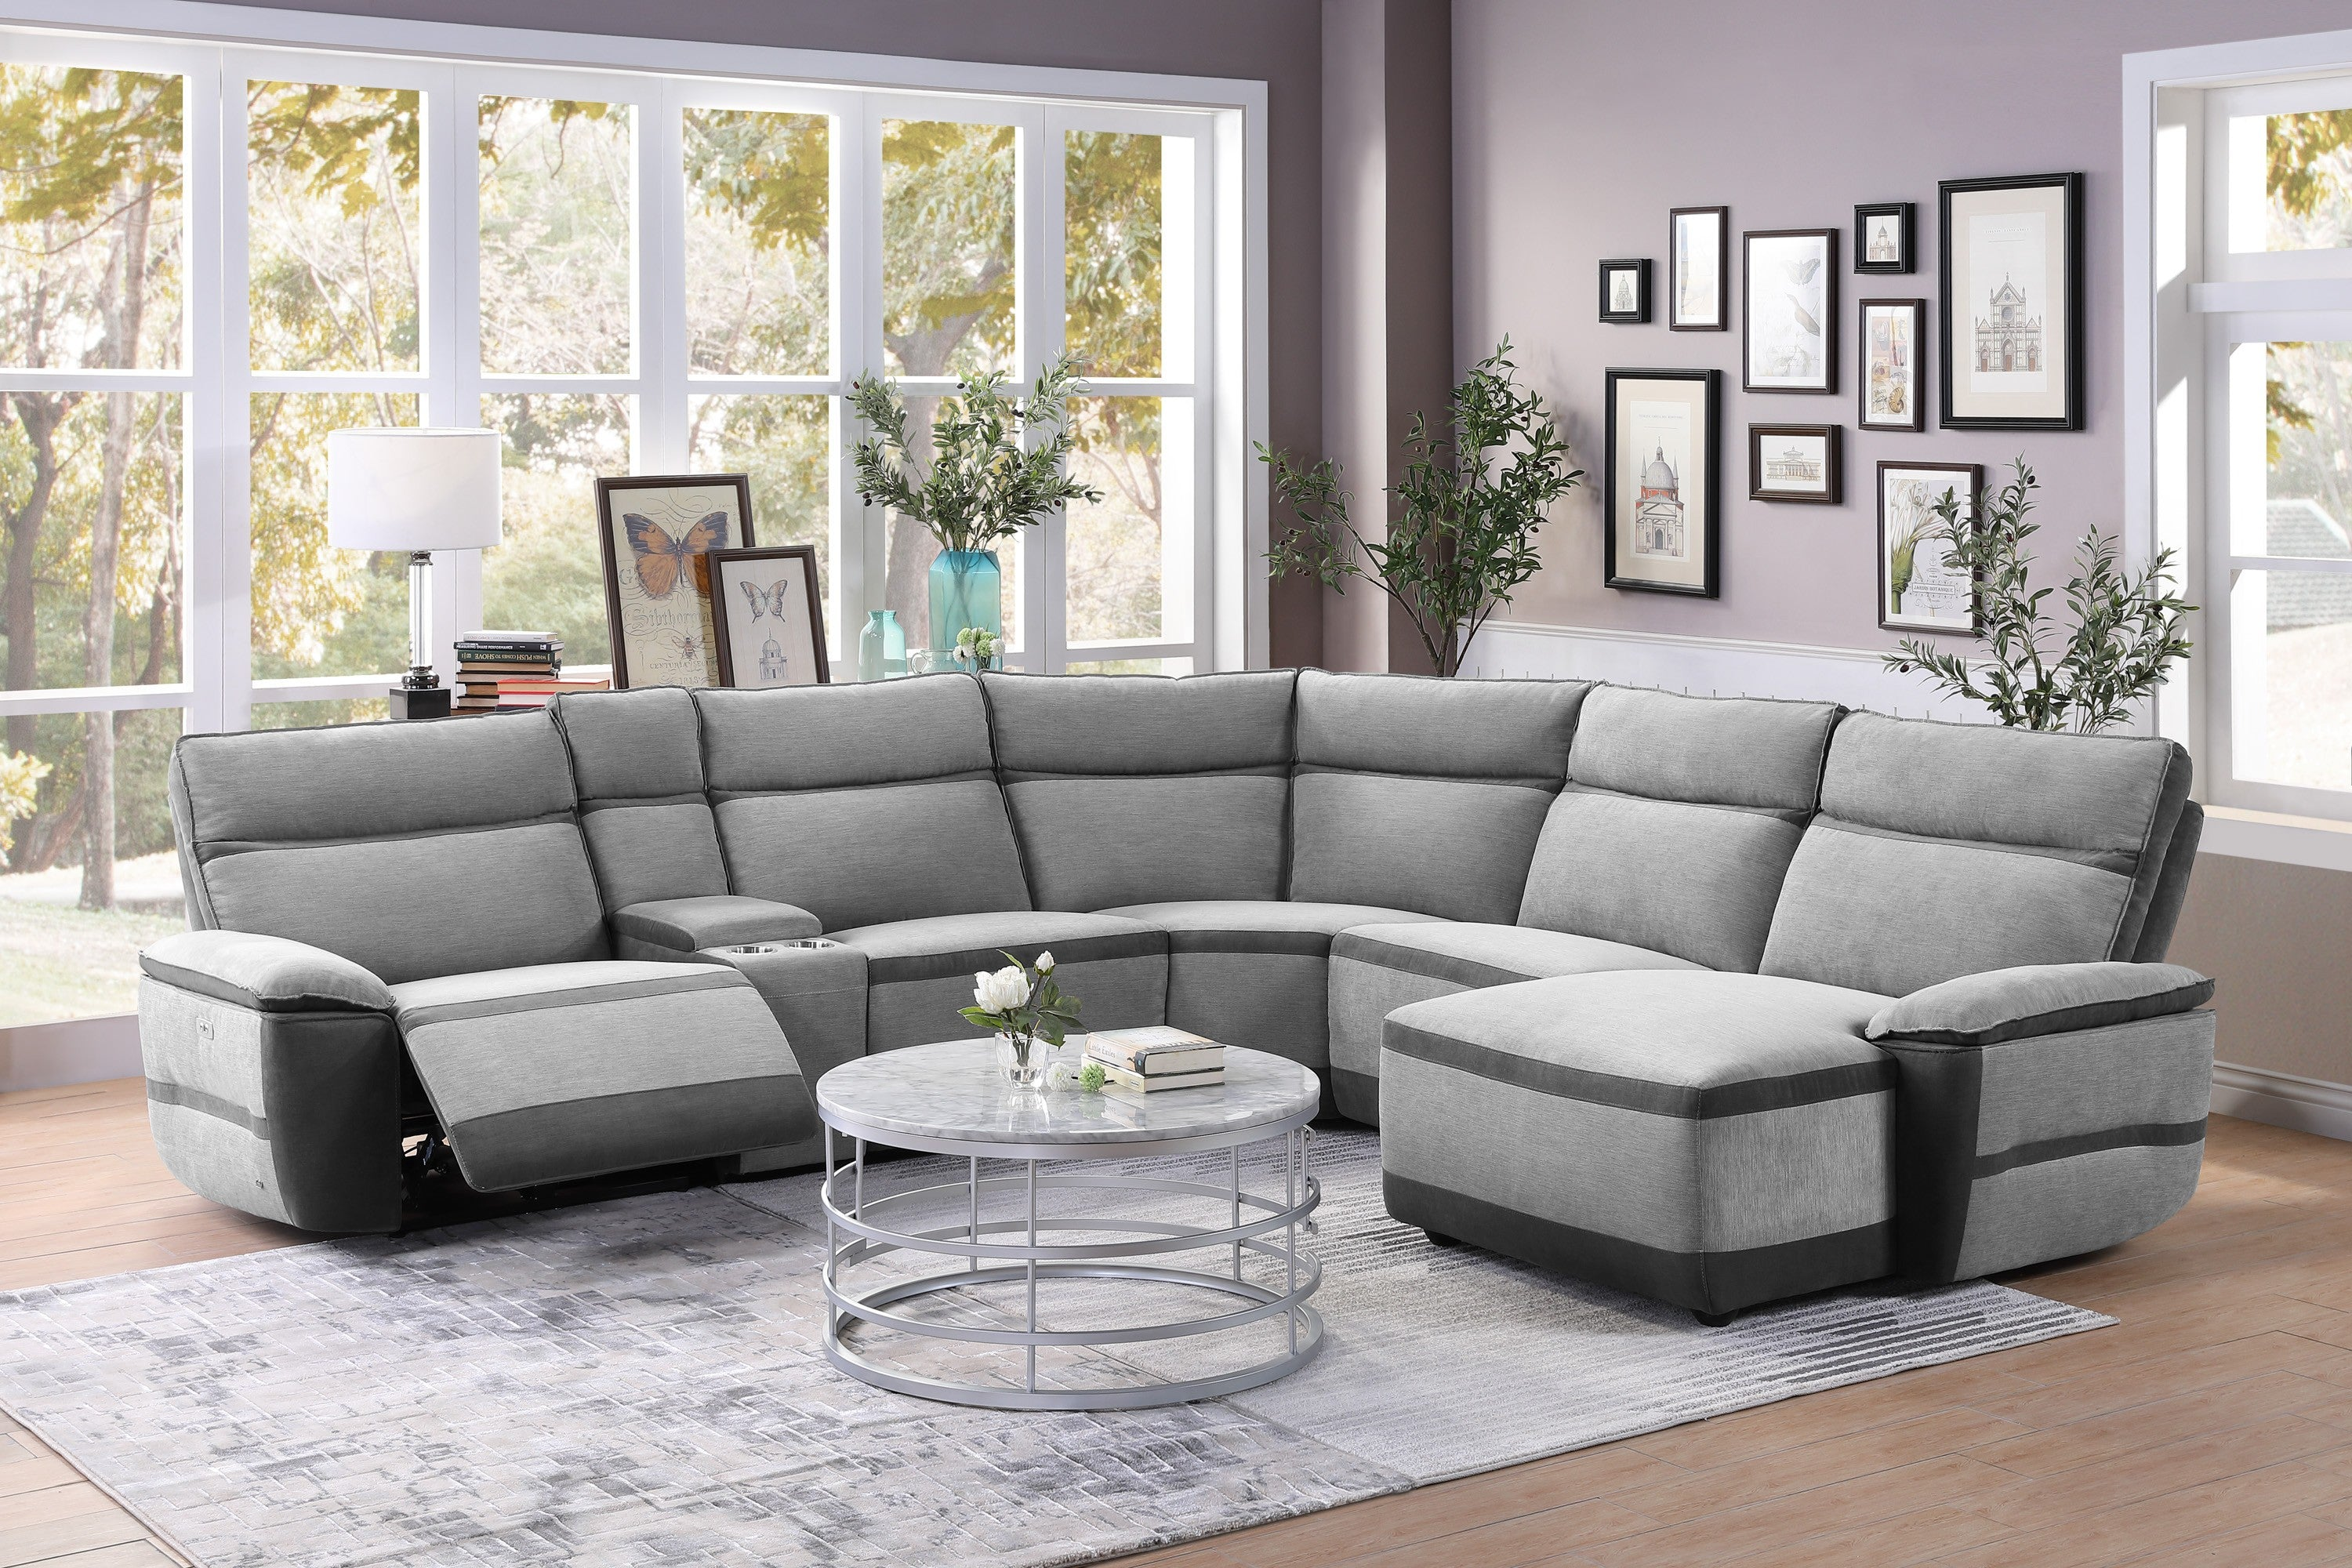 Homelegance Hedera Gray Polyester Finish 6 Piece Sectional Sofa ...